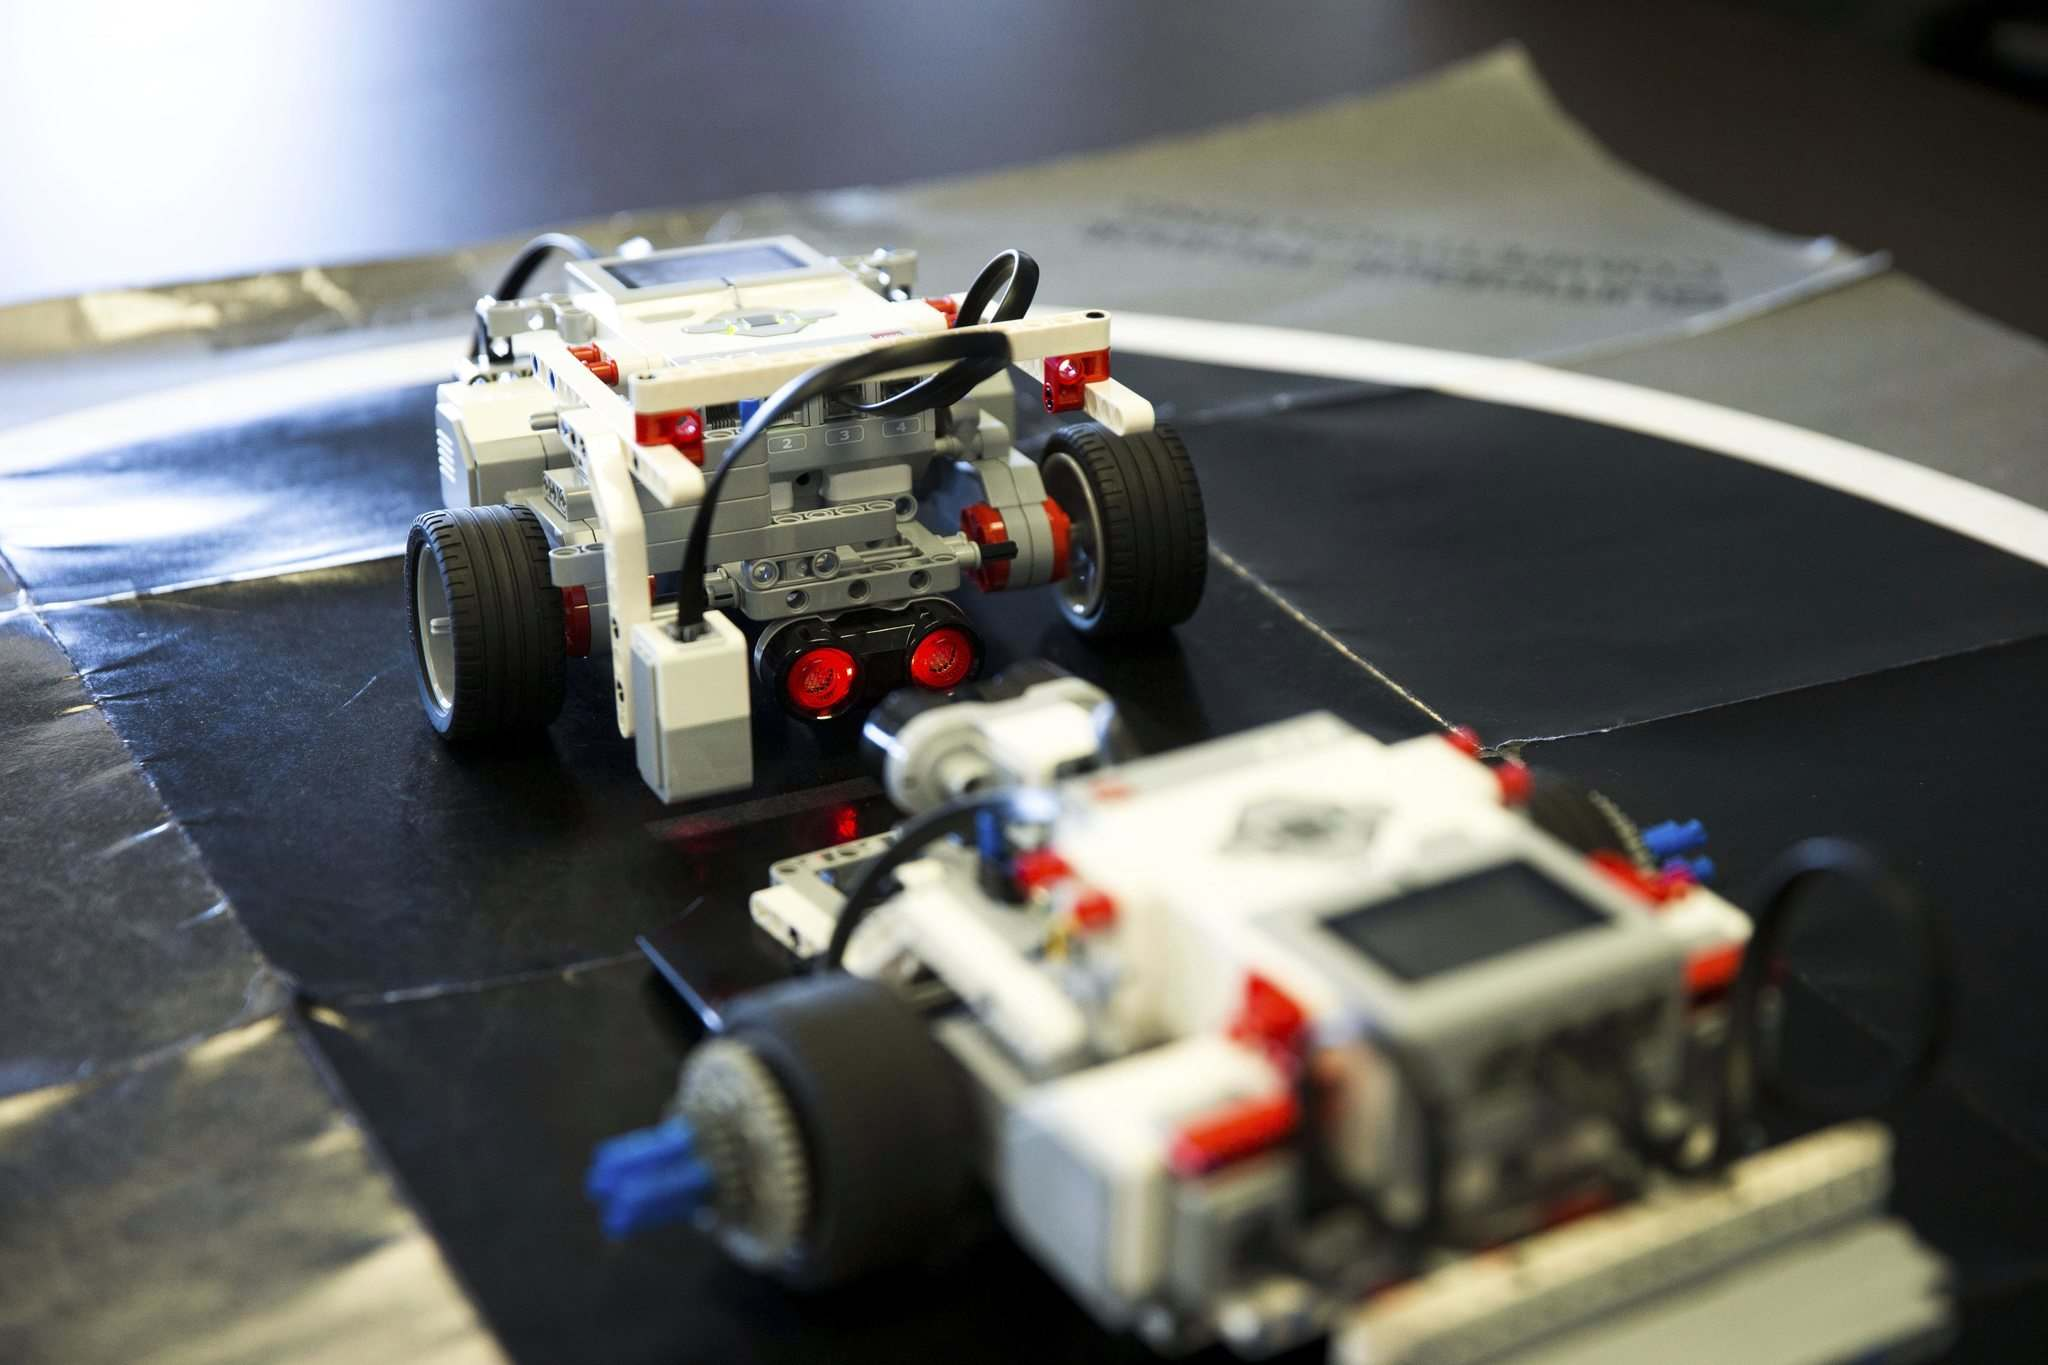 MIKAELA MACKENZIE / WINNIPEG FREE PRESS</p><p>First Peoples Development Inc. has teamed up with Winnipeg robotics company Cogmation to deliver two-week-long robotics workshops at Manitoba First Nations. The workshops culminate in a Lego robot sumo wrestling competition.</p></p>